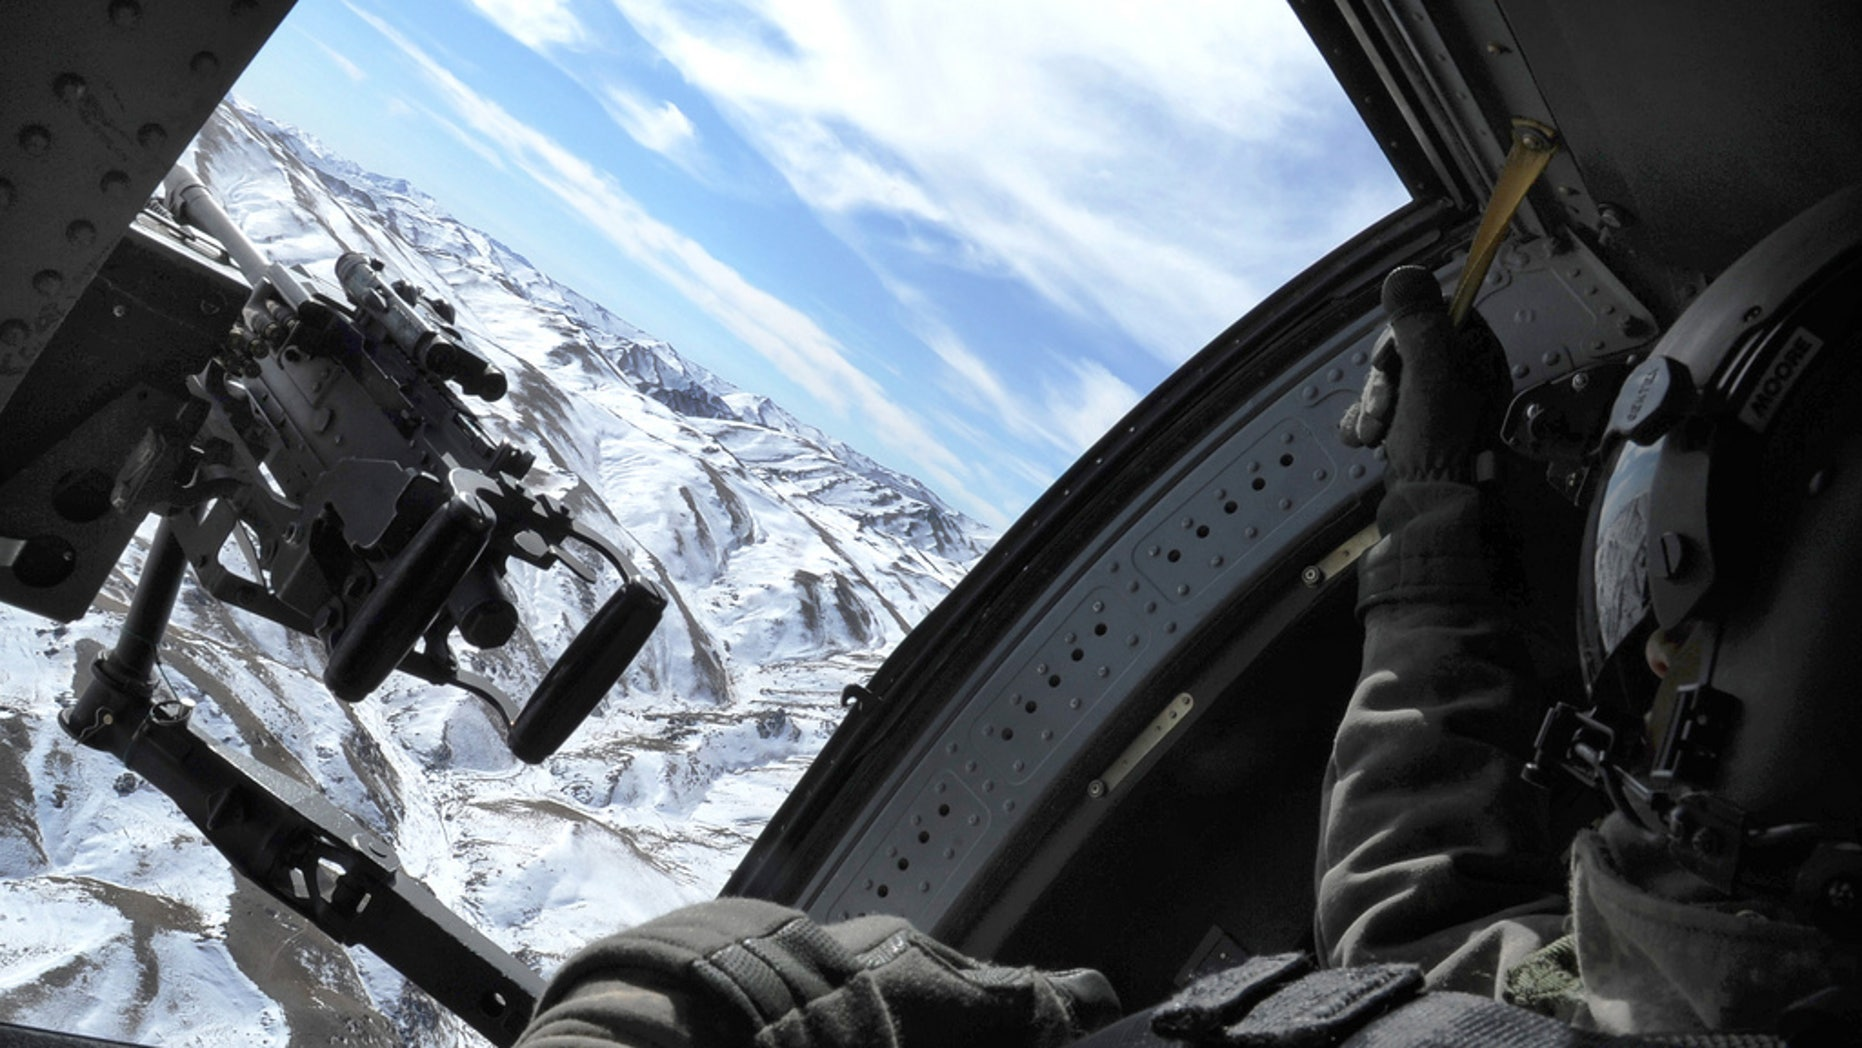 Specialist Kayla Moore covers her sector in a UH-60 Black Hawk while traveling from Forward Operating Base Lightning to Contingency Operating Base Ajiristan Afghanistan January 20, 2010. SPC Moore is a Black Hawk Crew Chief assigned to the A Company 2-3 Aviation Regiment in Support of Operation Enduring Freedom.